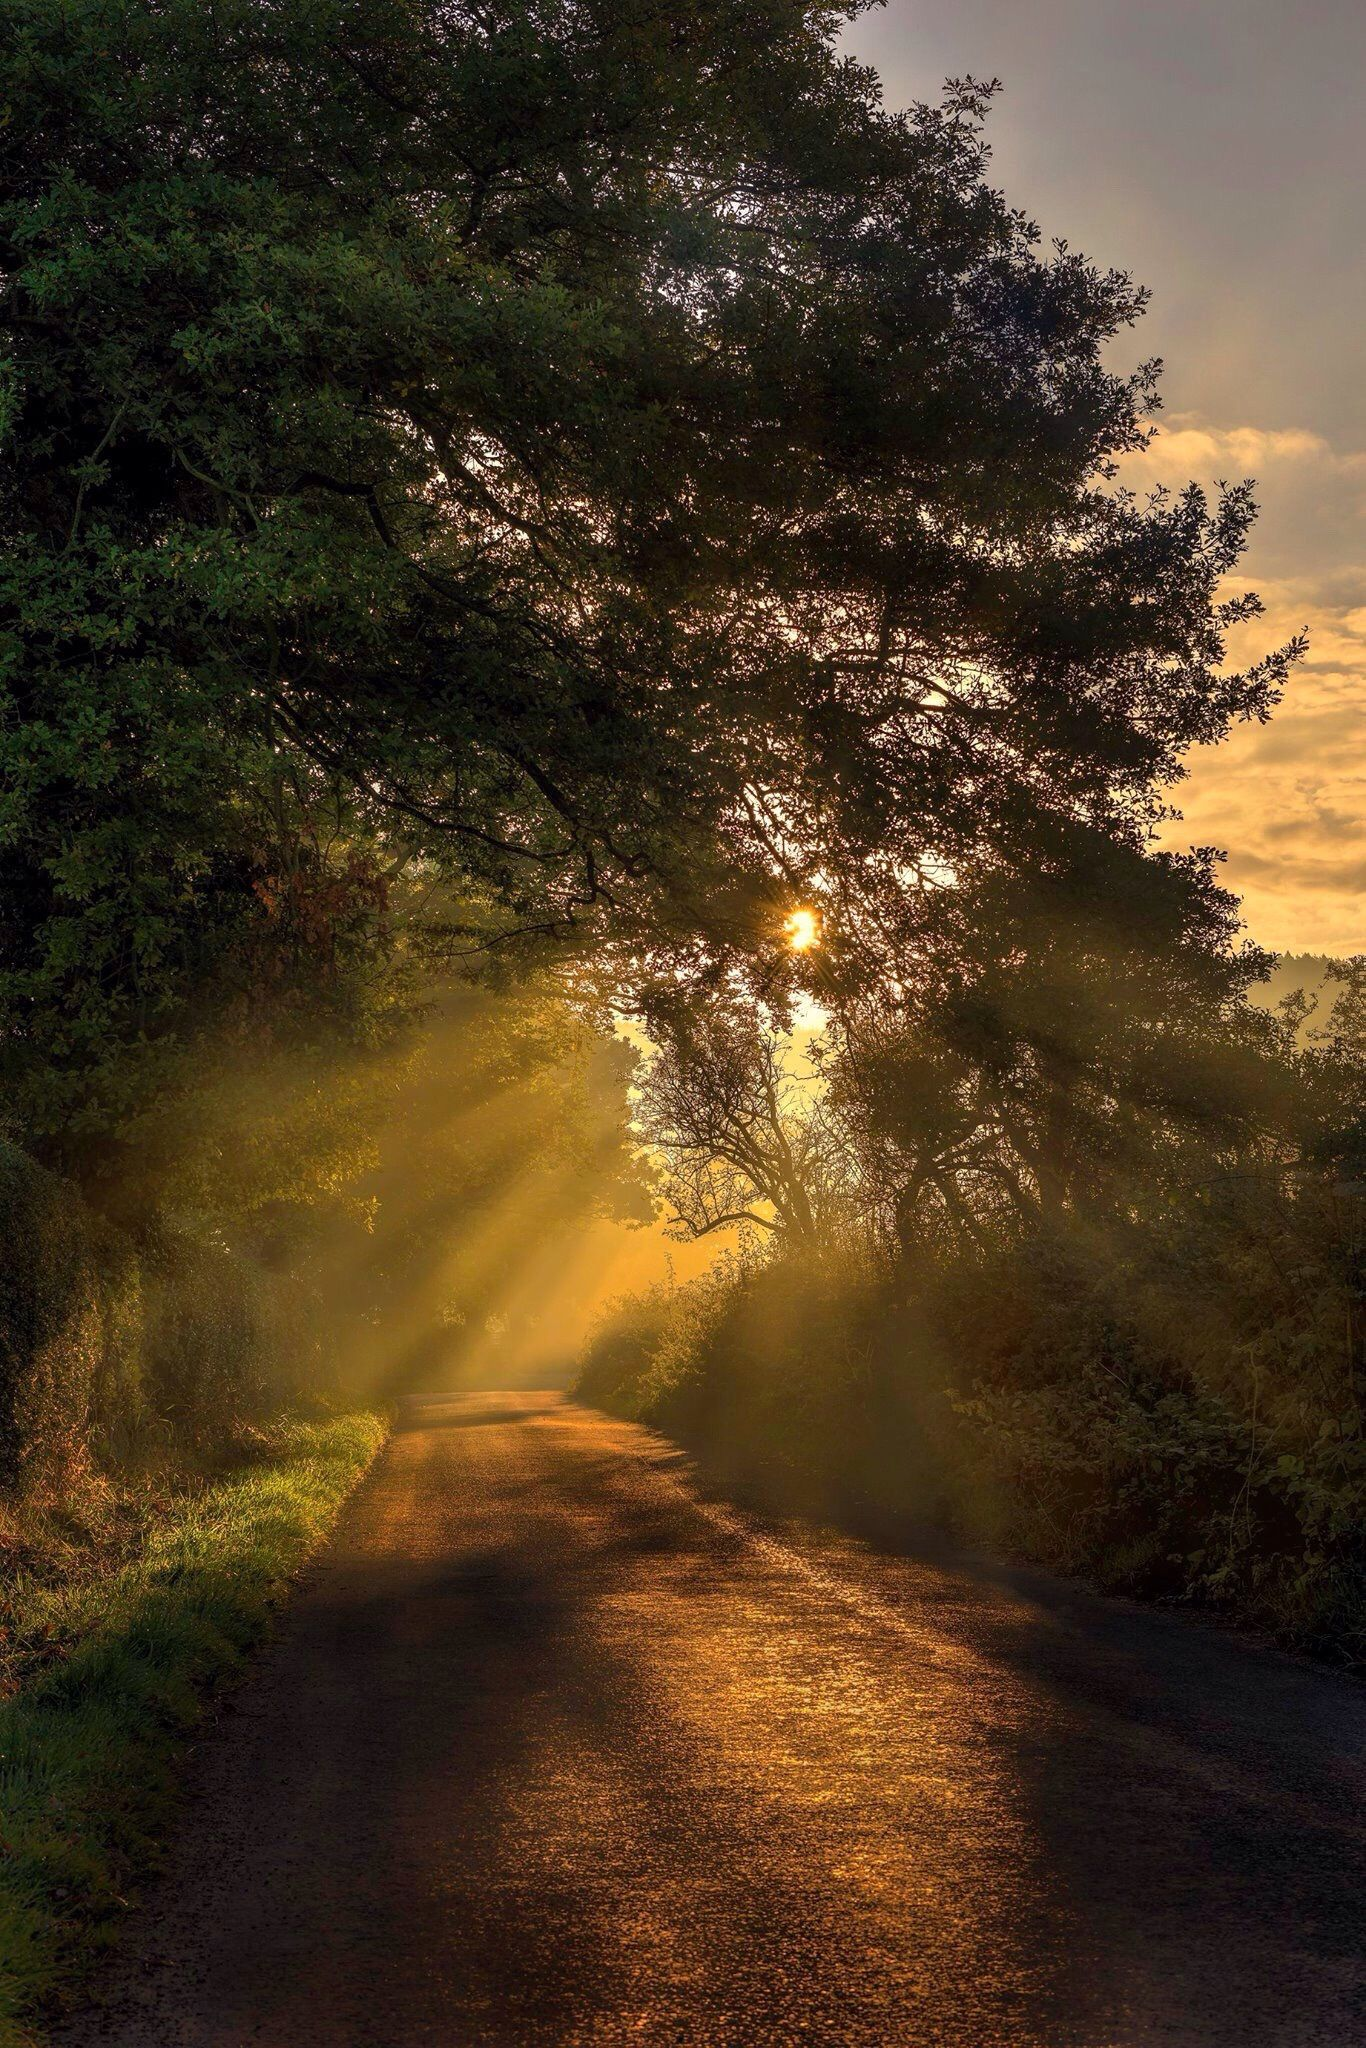 Take a walk into natures spotlight | a misty dawn on an autumn road ...